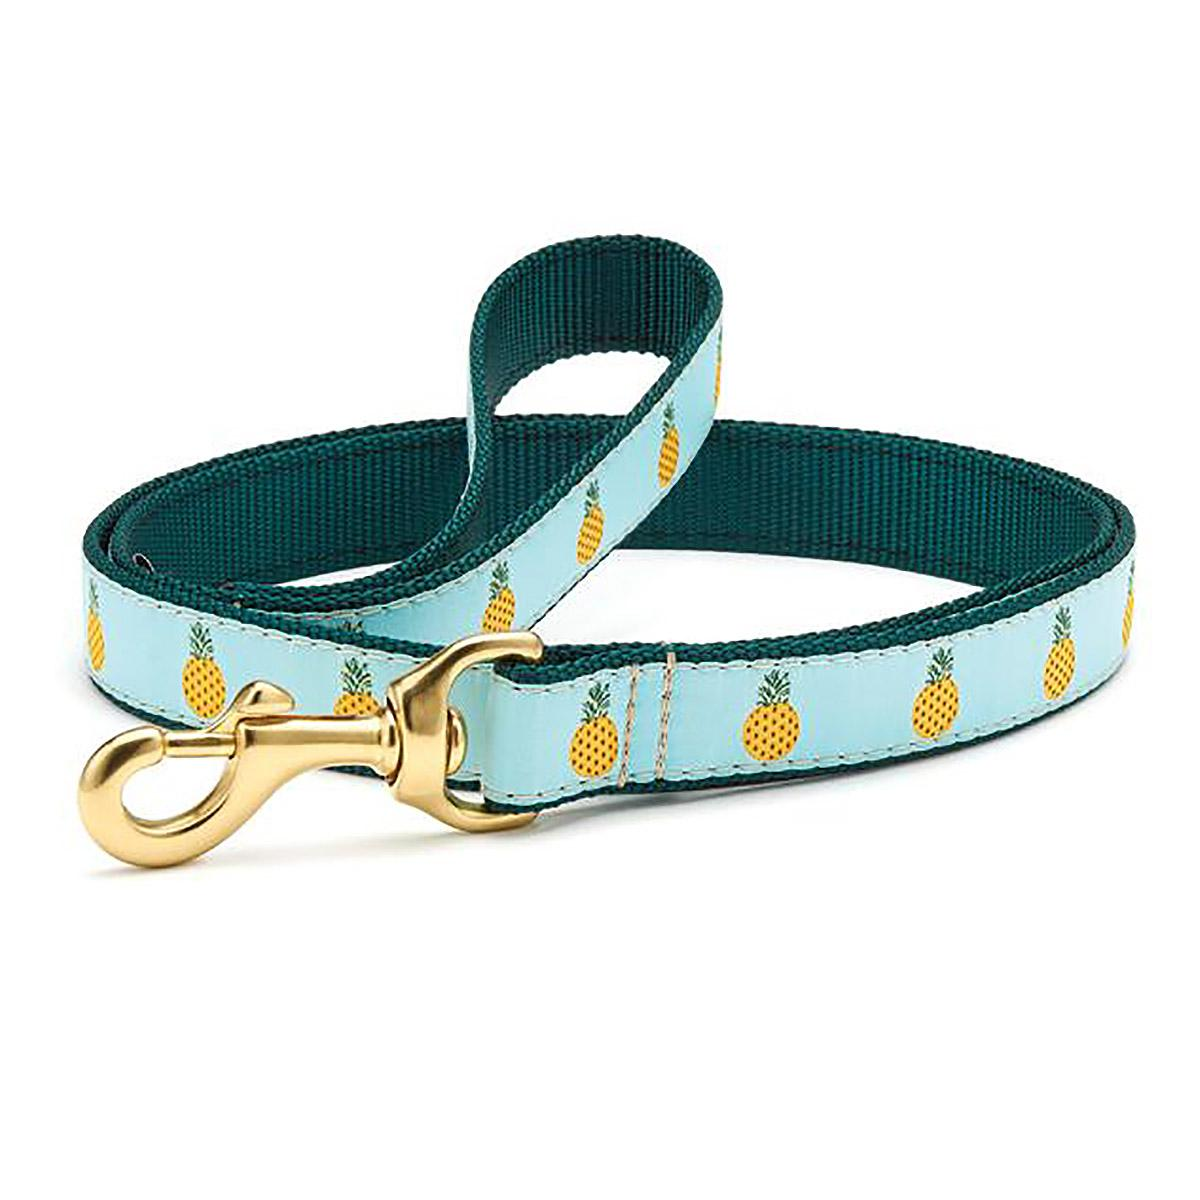 Pineapple Dog Leash by Up Country